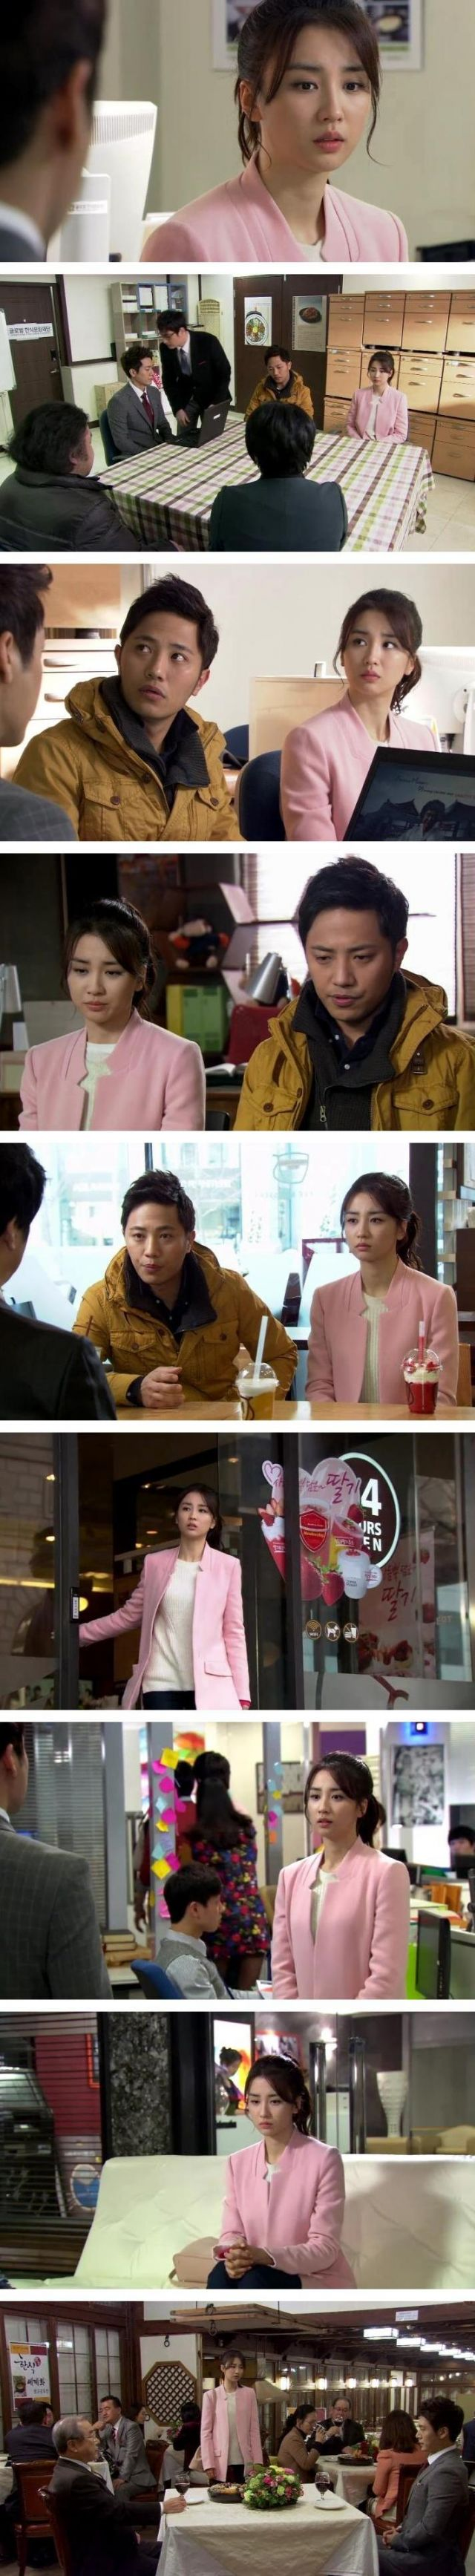 Spoiler] Added episode 12 captures for the Korean drama 'Ad Genius